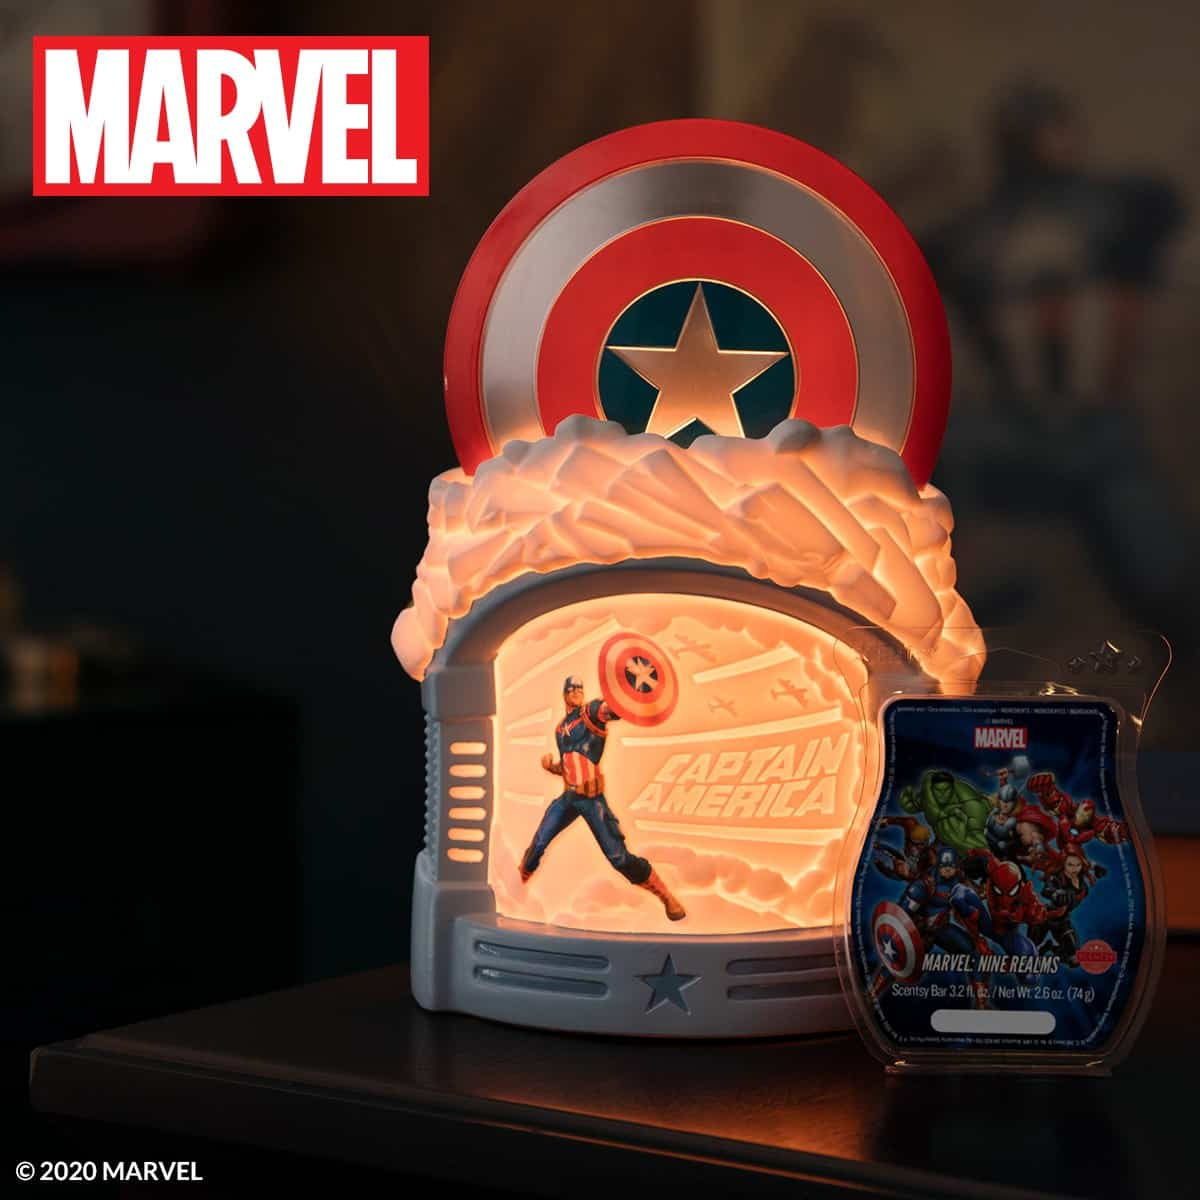 MARVEL CAPTAIN AMERICA SCENTSY WARMER